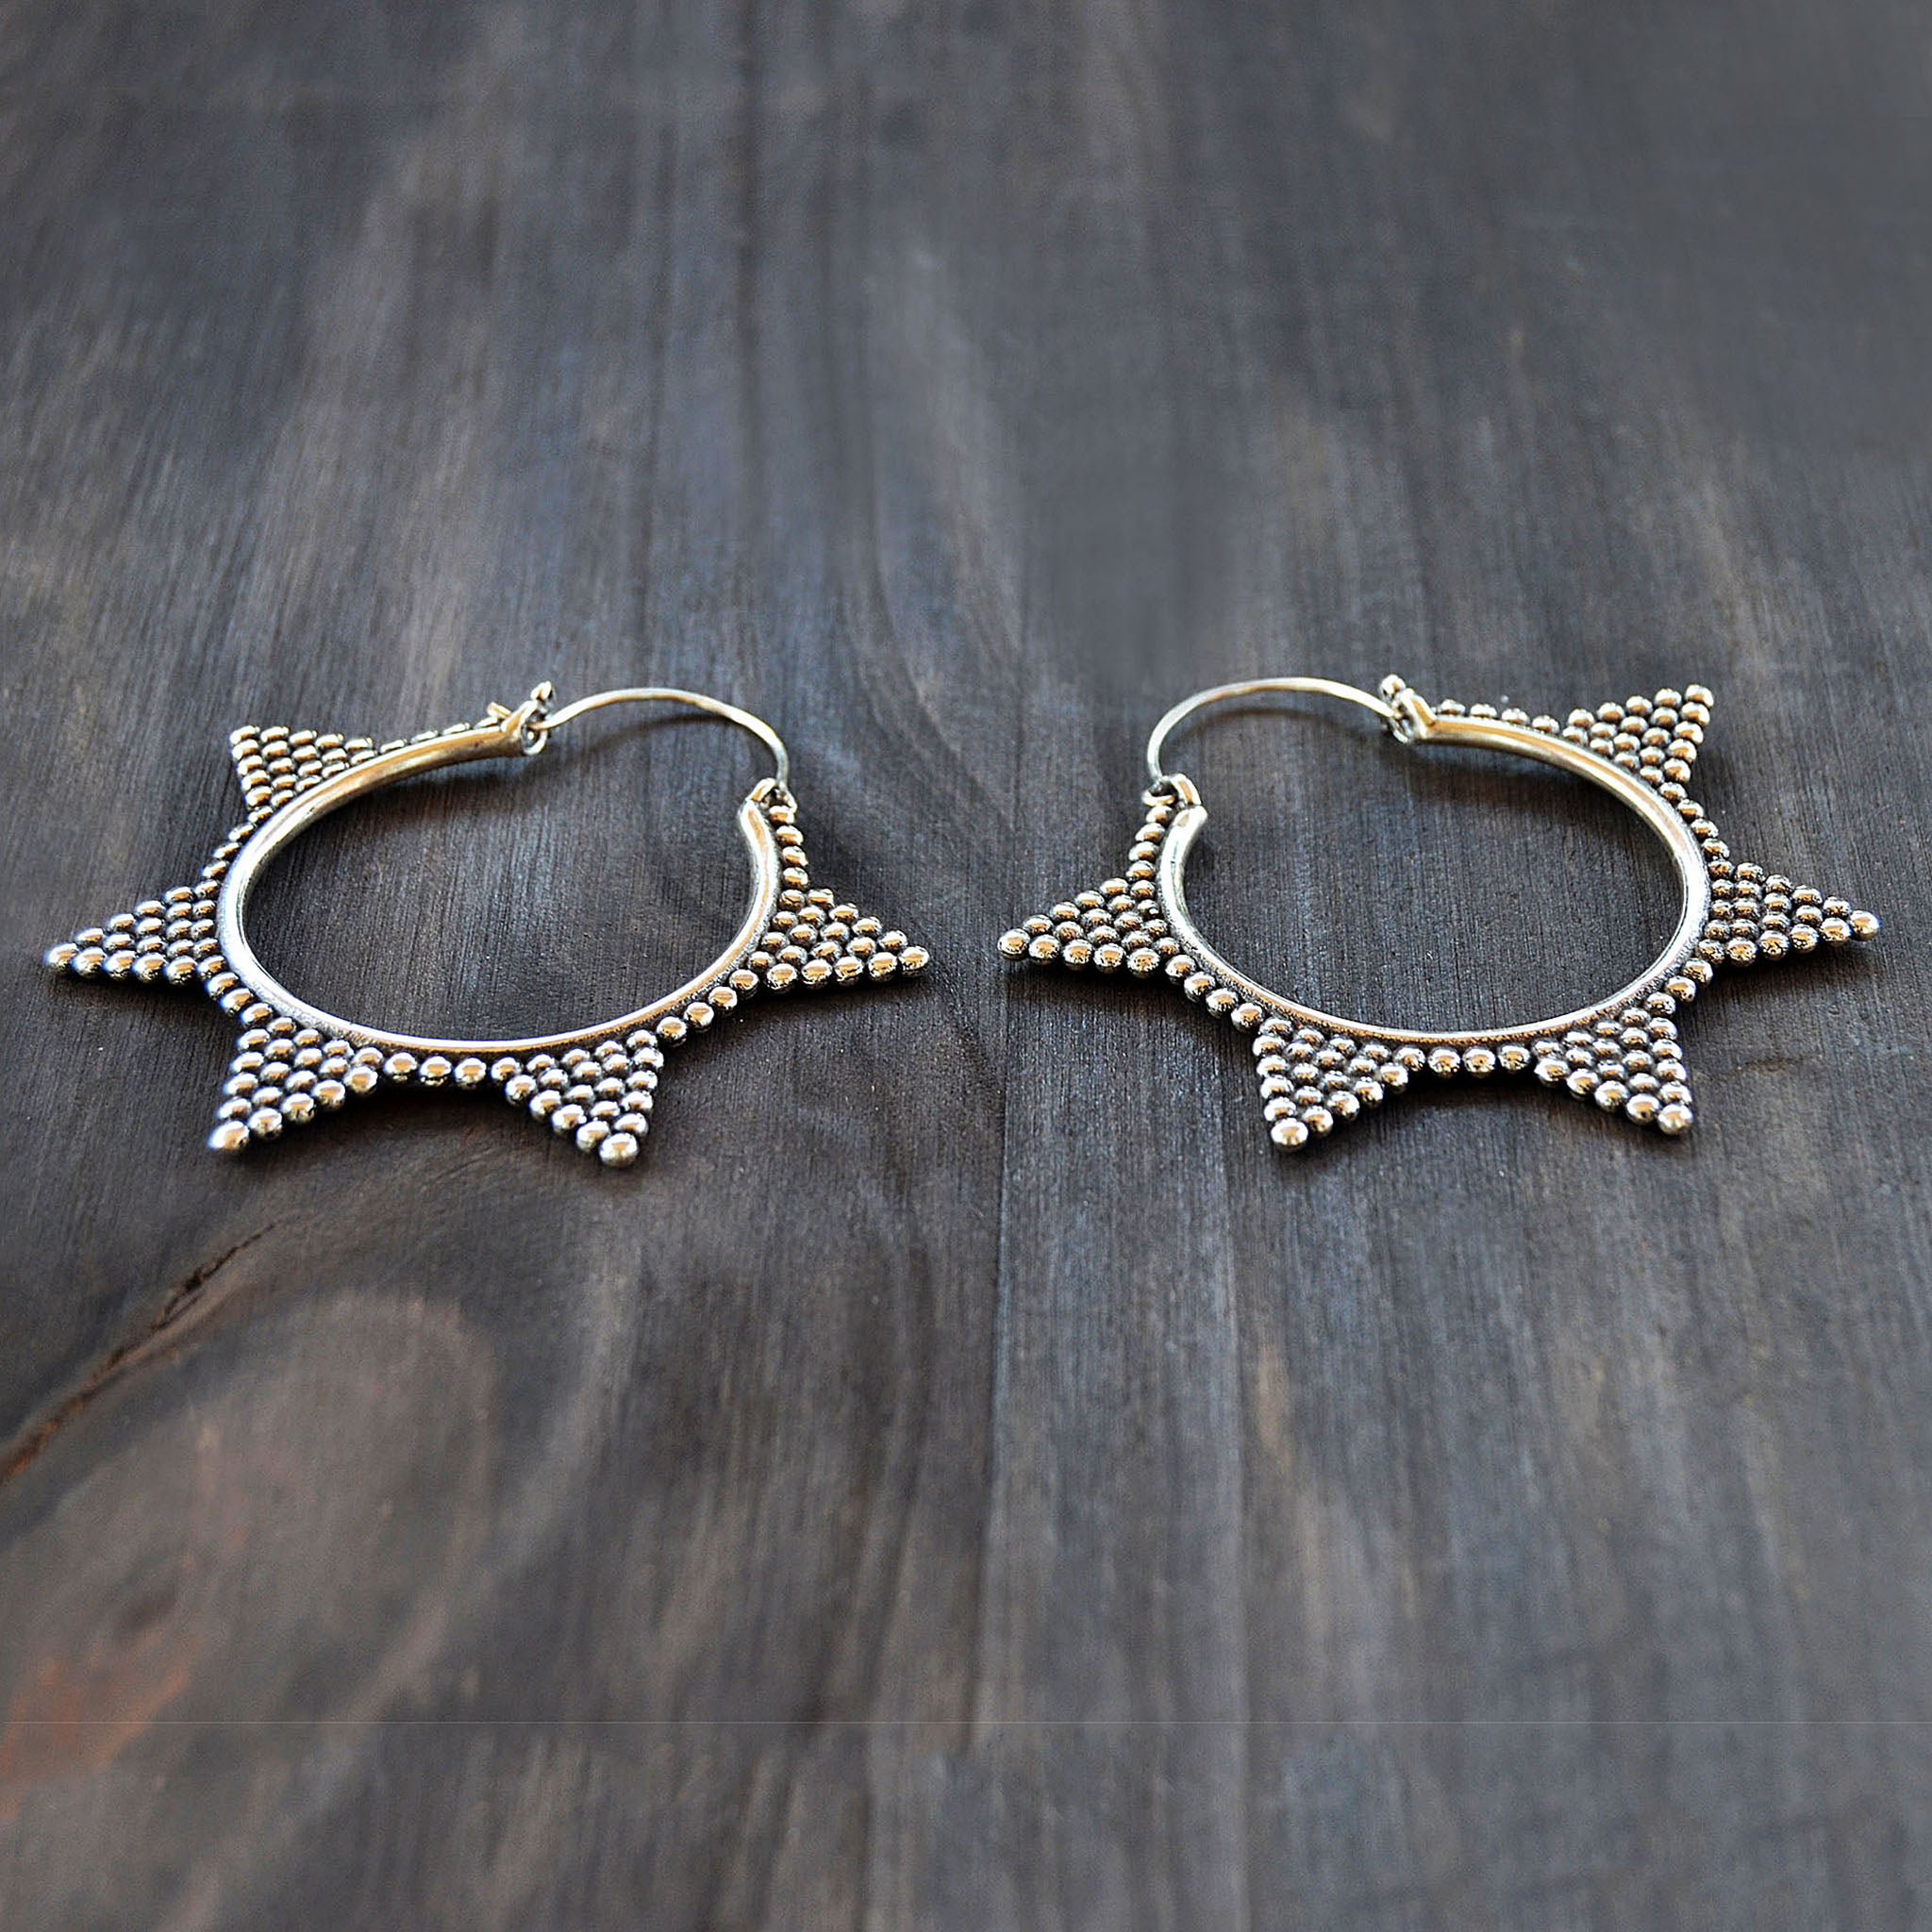 Large banjara round earrings